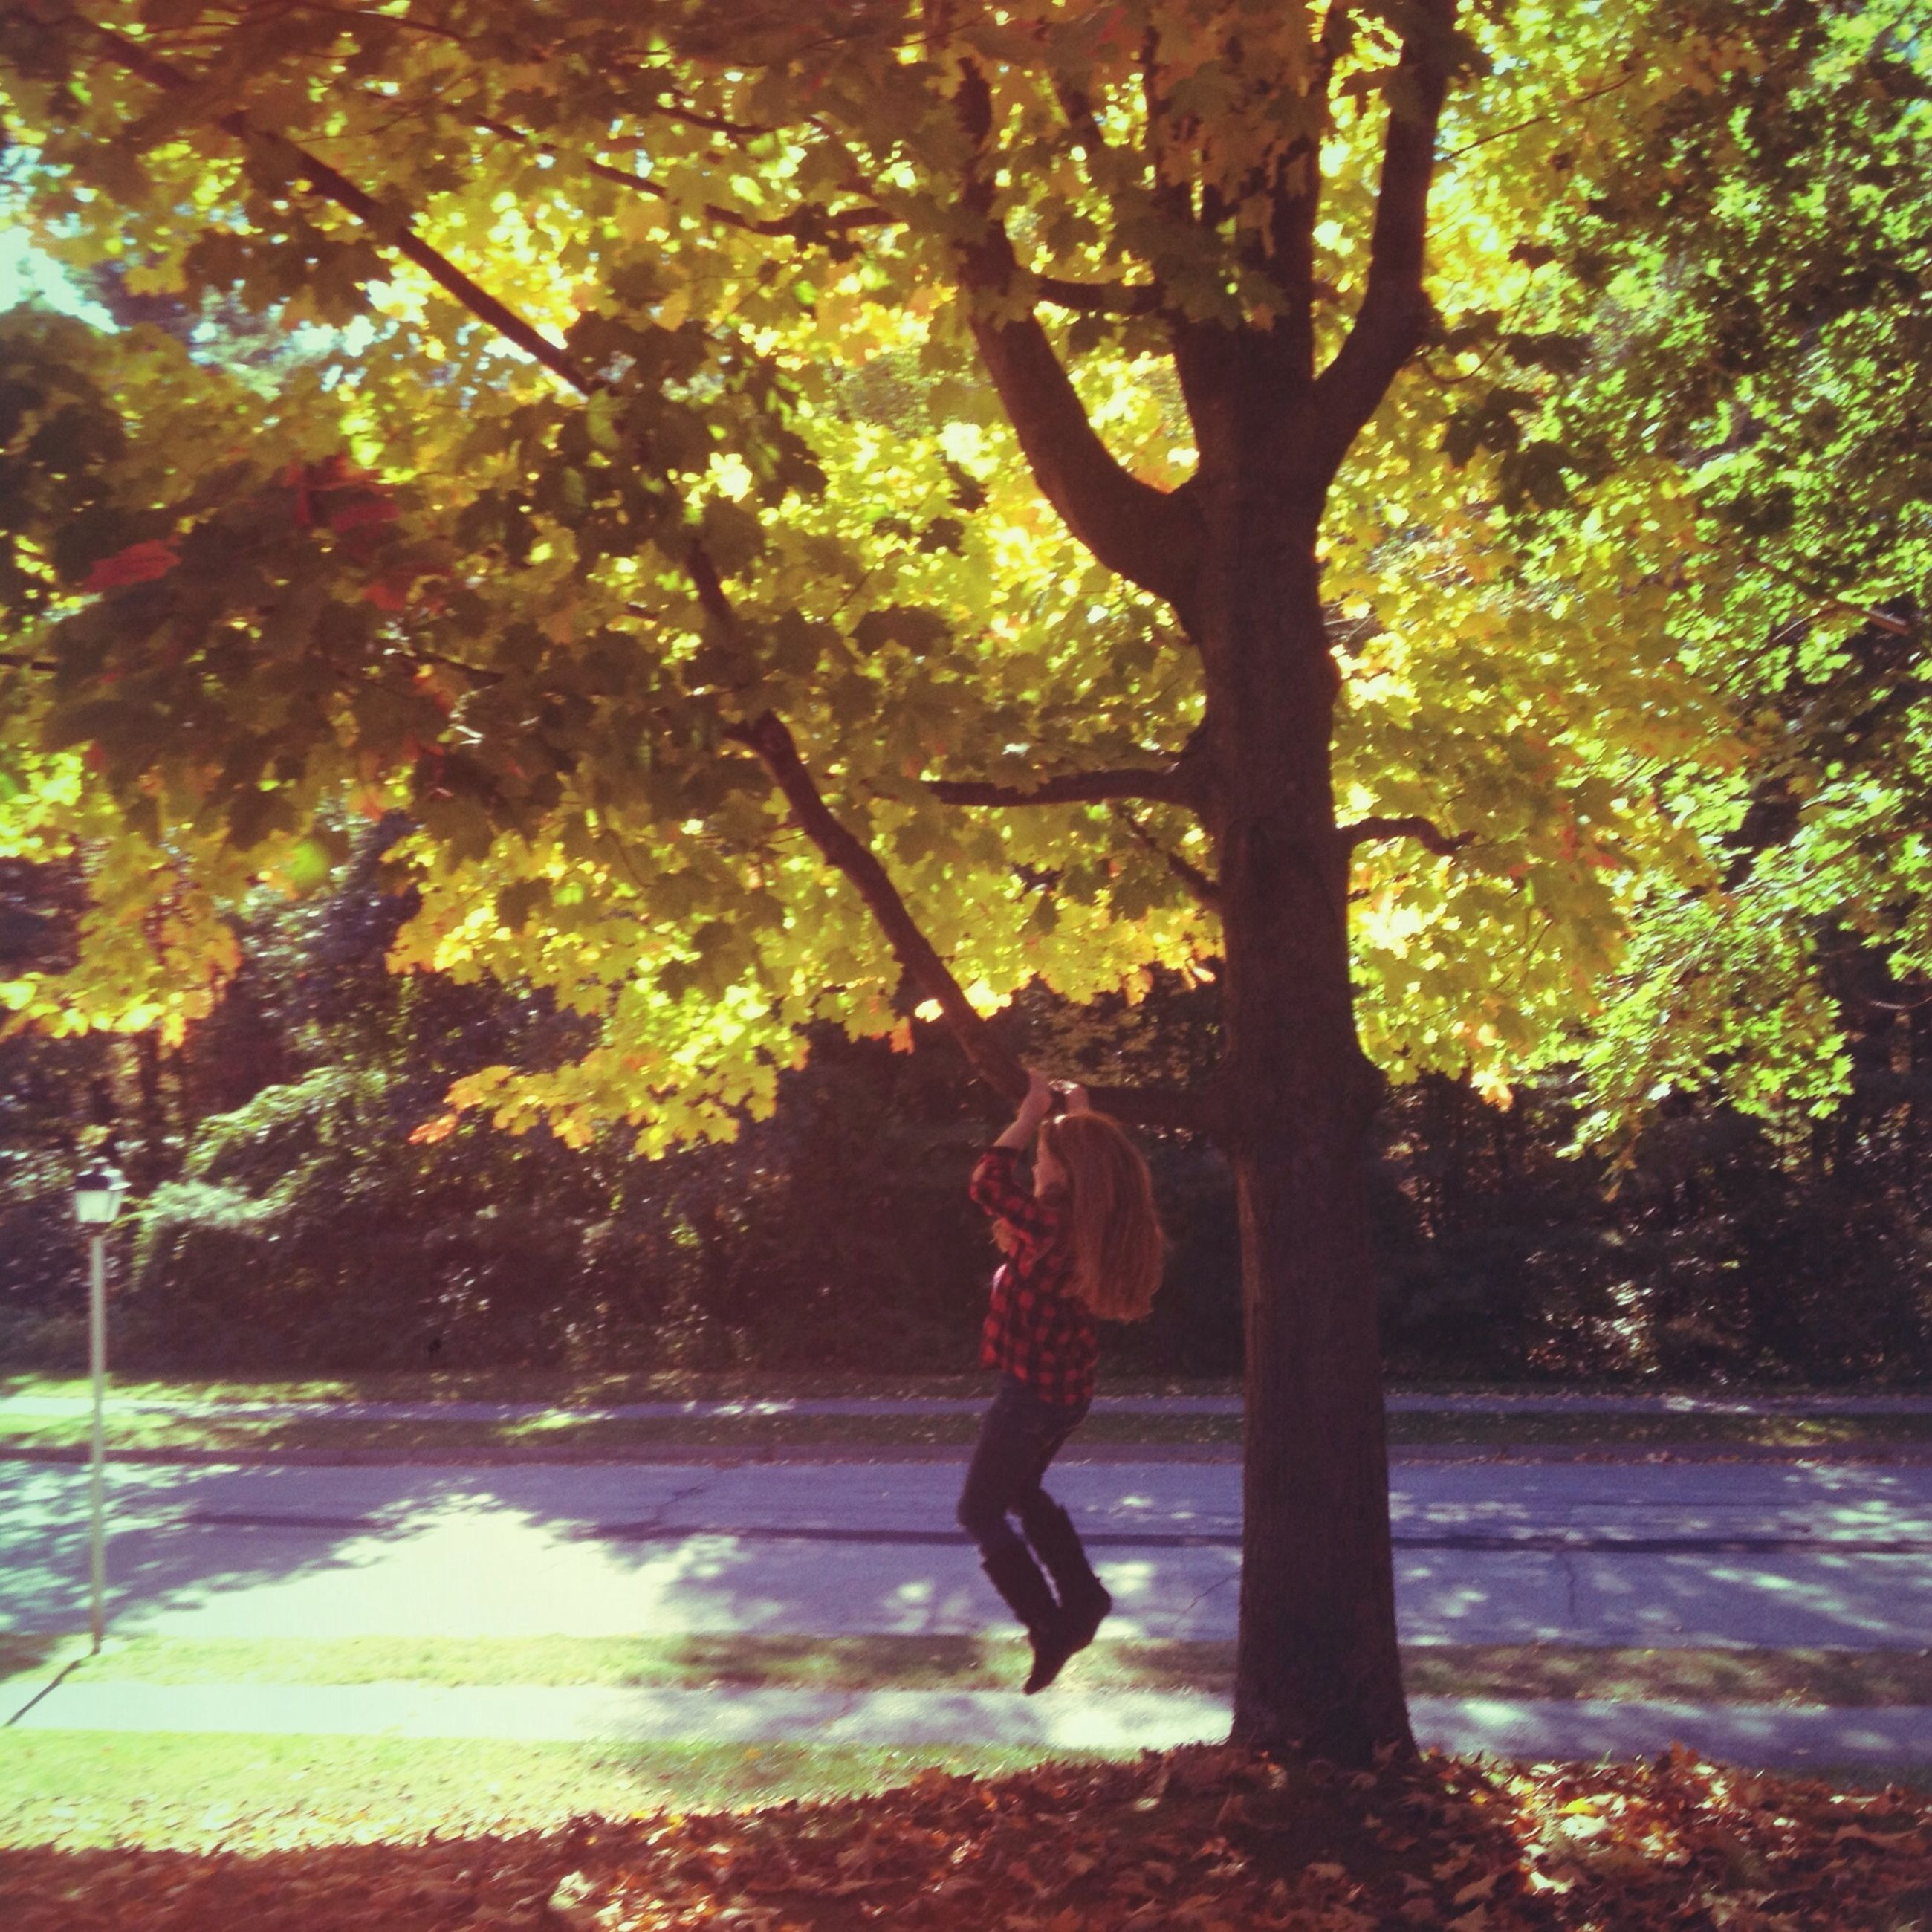 tree, full length, lifestyles, leisure activity, park - man made space, rear view, tree trunk, walking, casual clothing, childhood, sunlight, growth, men, nature, person, side view, standing, shadow